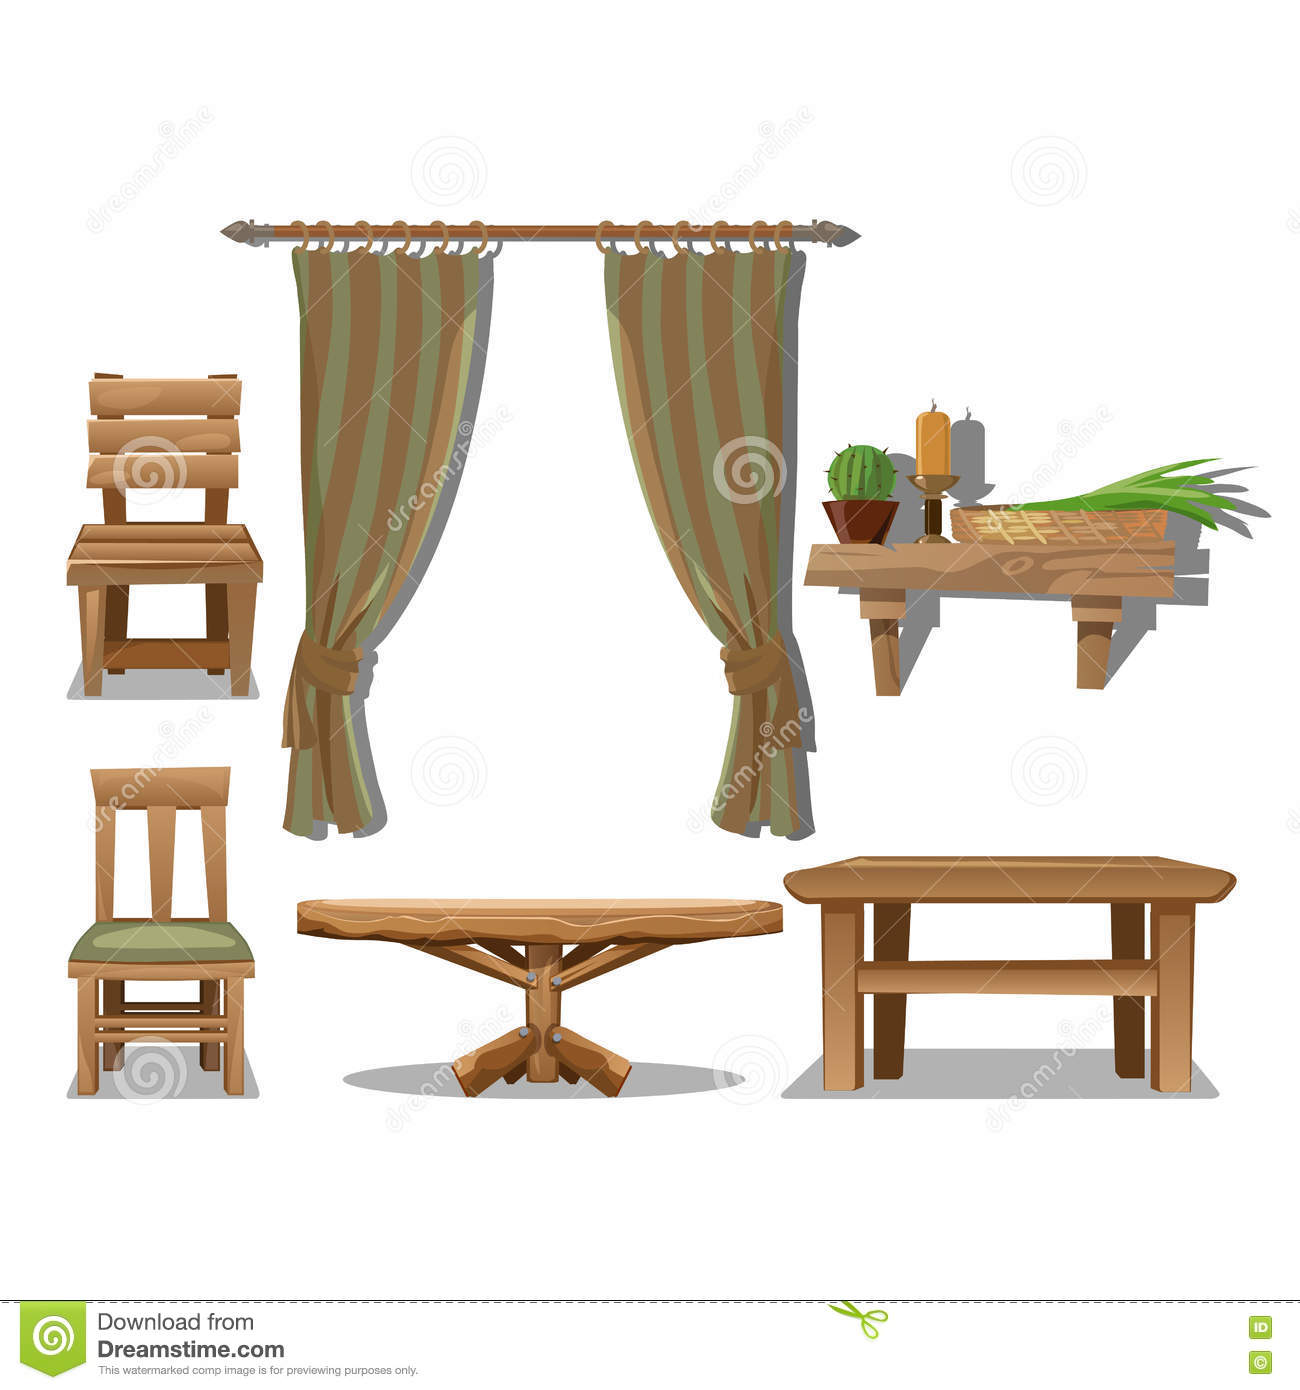 Old wooden chair styles - Big Set Of Old Wooden Furniture In Wild West Style